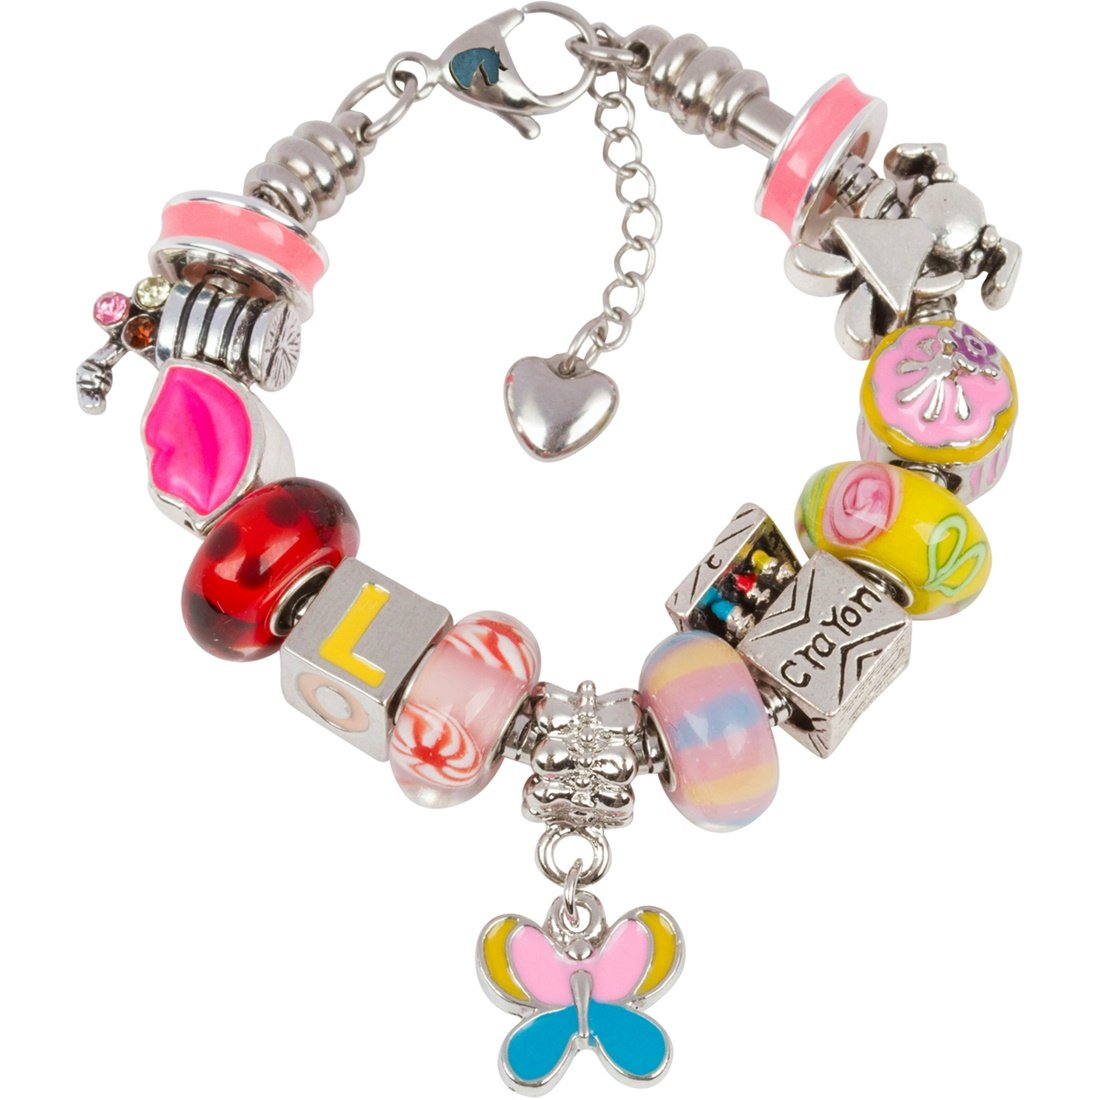 Timeline Treasures European Charm Bracelet With Charms For Girls, Stainless Steel Snake Chain, Pink Back To School Pink 6.5 Inch (16.5cm) The Knights Treasure CBJFG-102